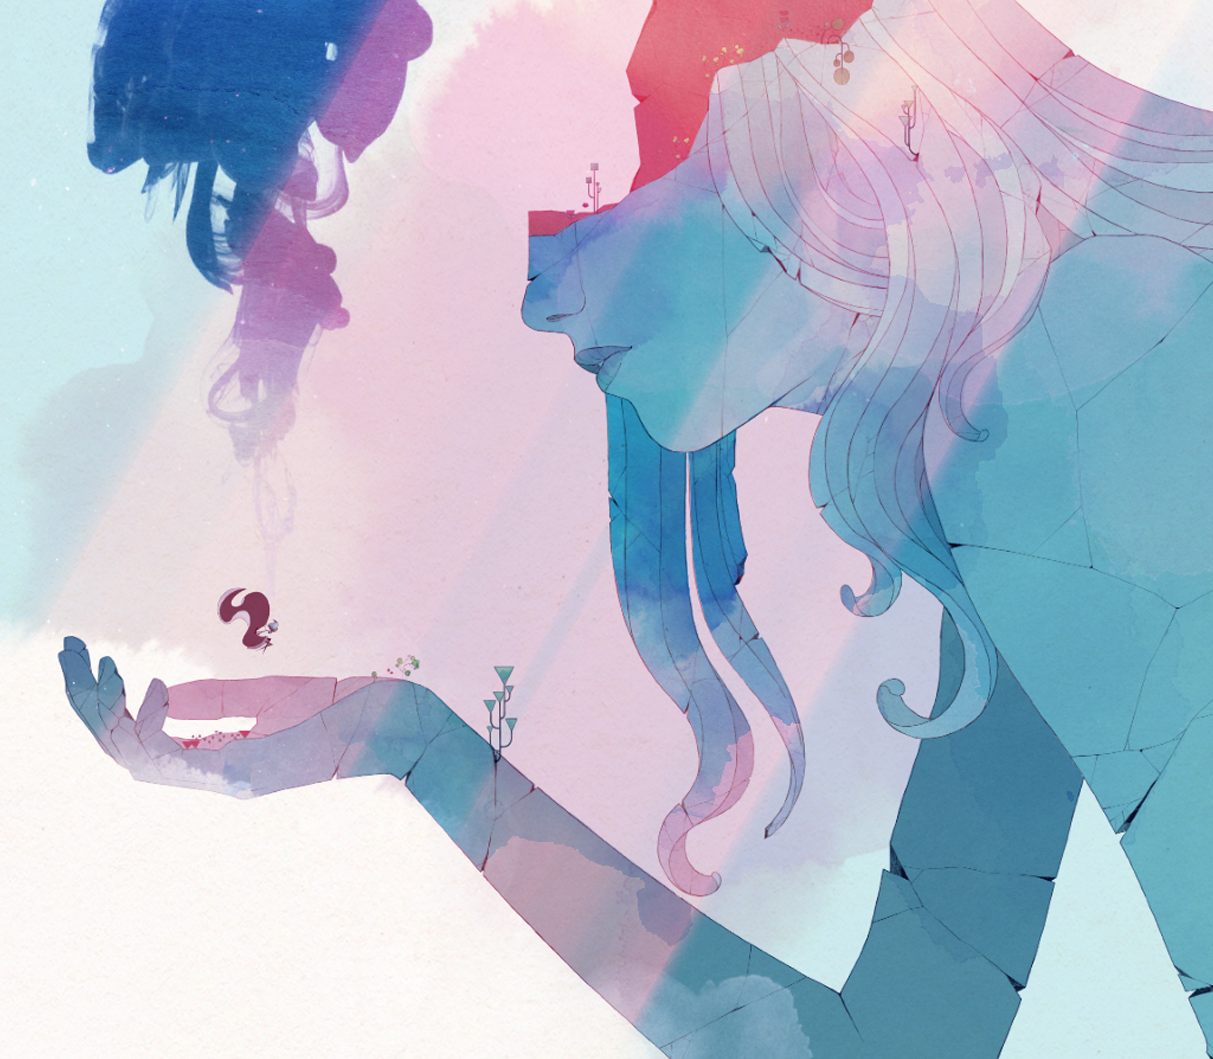 Gris is a stunning watercolor adventure headed to Switch